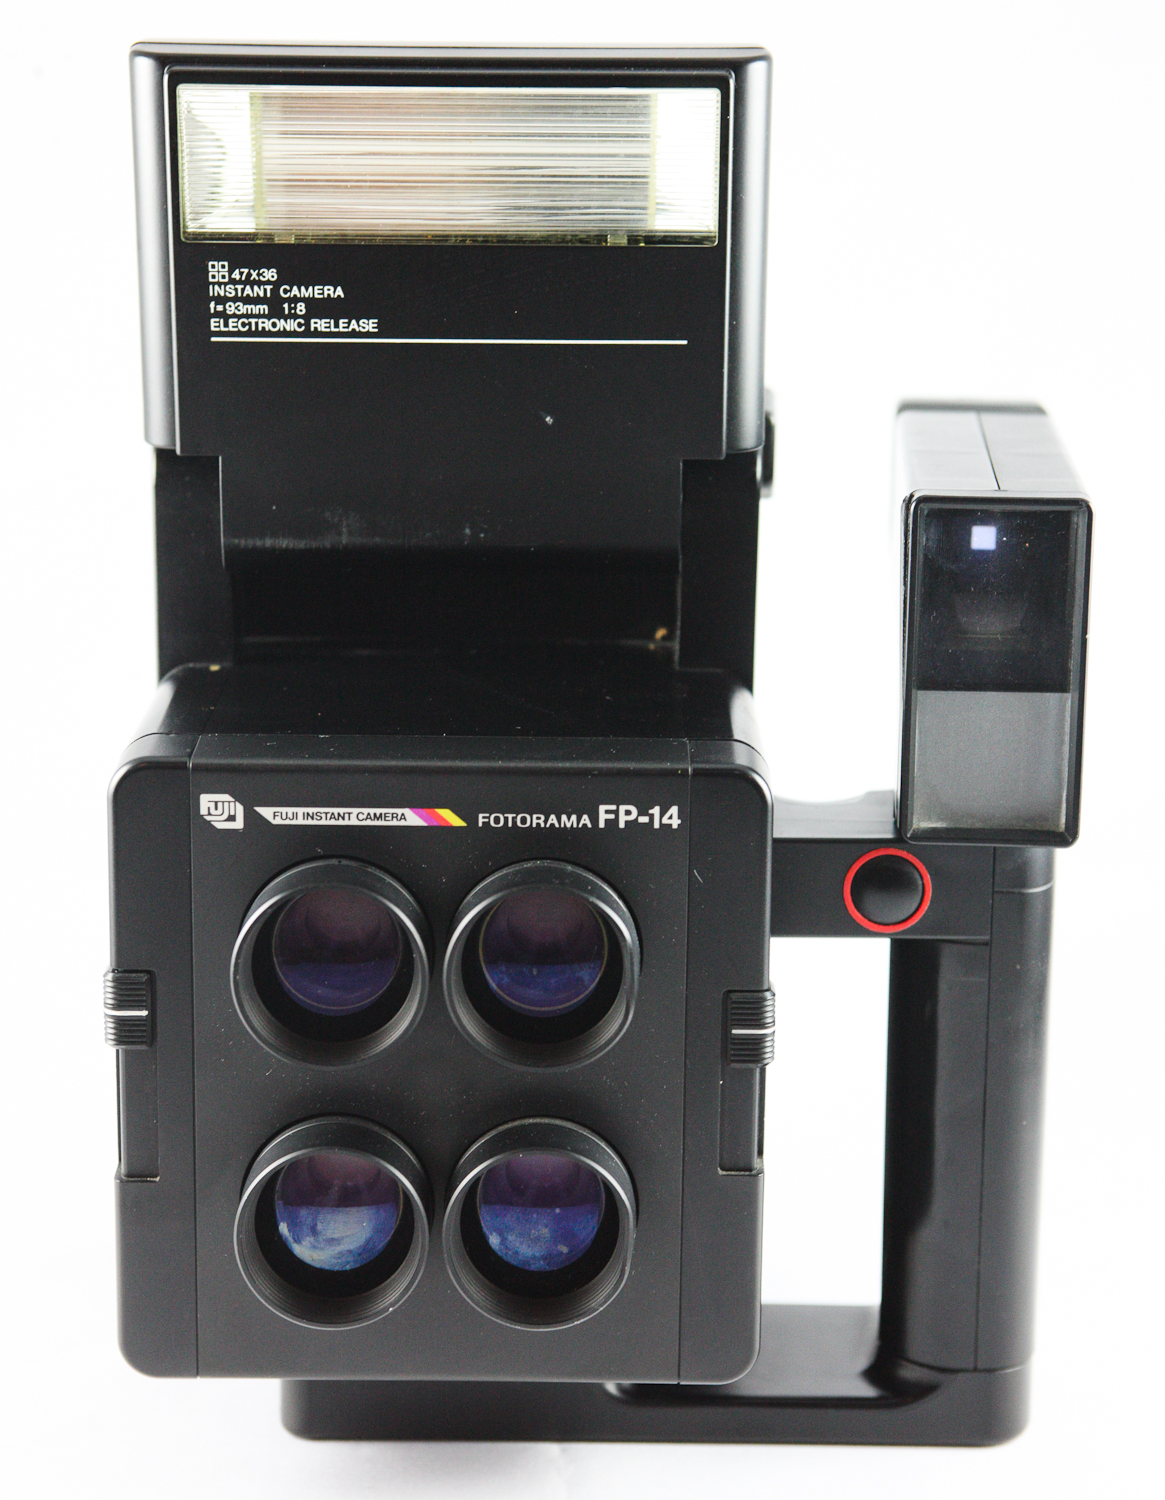 389d2d4784932 Types of non-Polaroid instant cameras edit